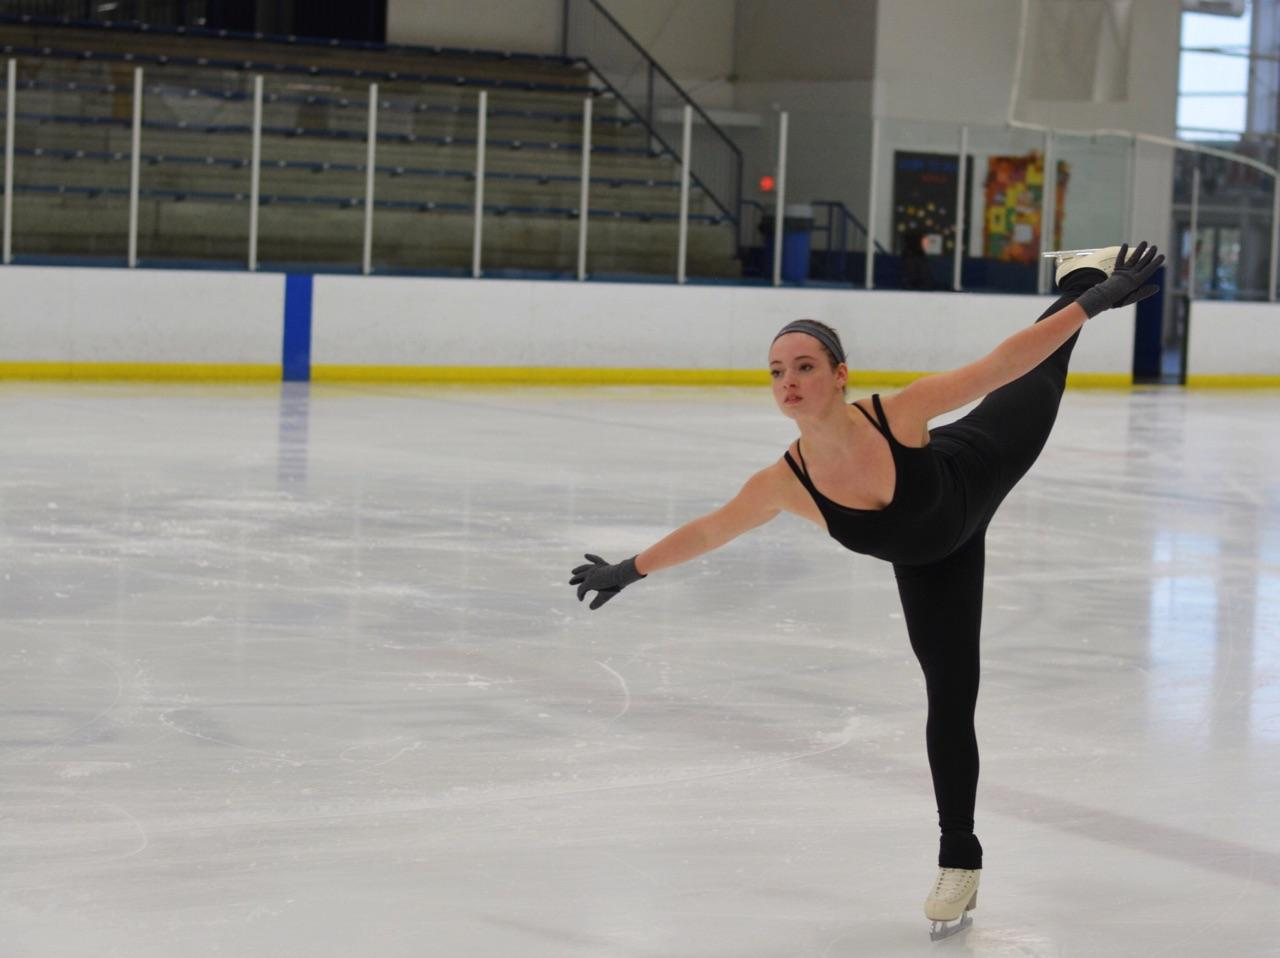 Sophie+Pearson+performs+one+of+her+favorite+moves+called+the+double+flip%2C+during+her+3+hour+practice+on+ice.+